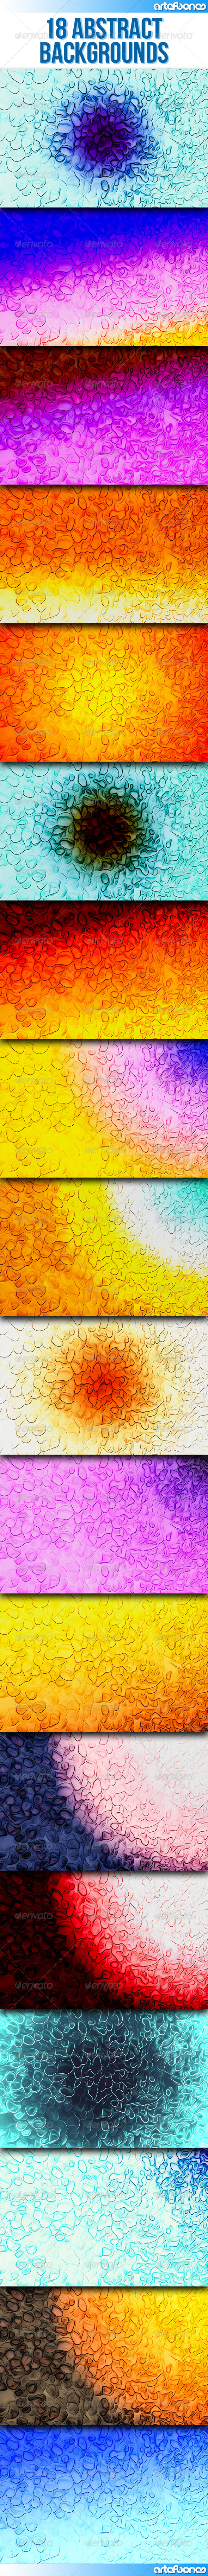 18 Abstract Backgrounds Part 2